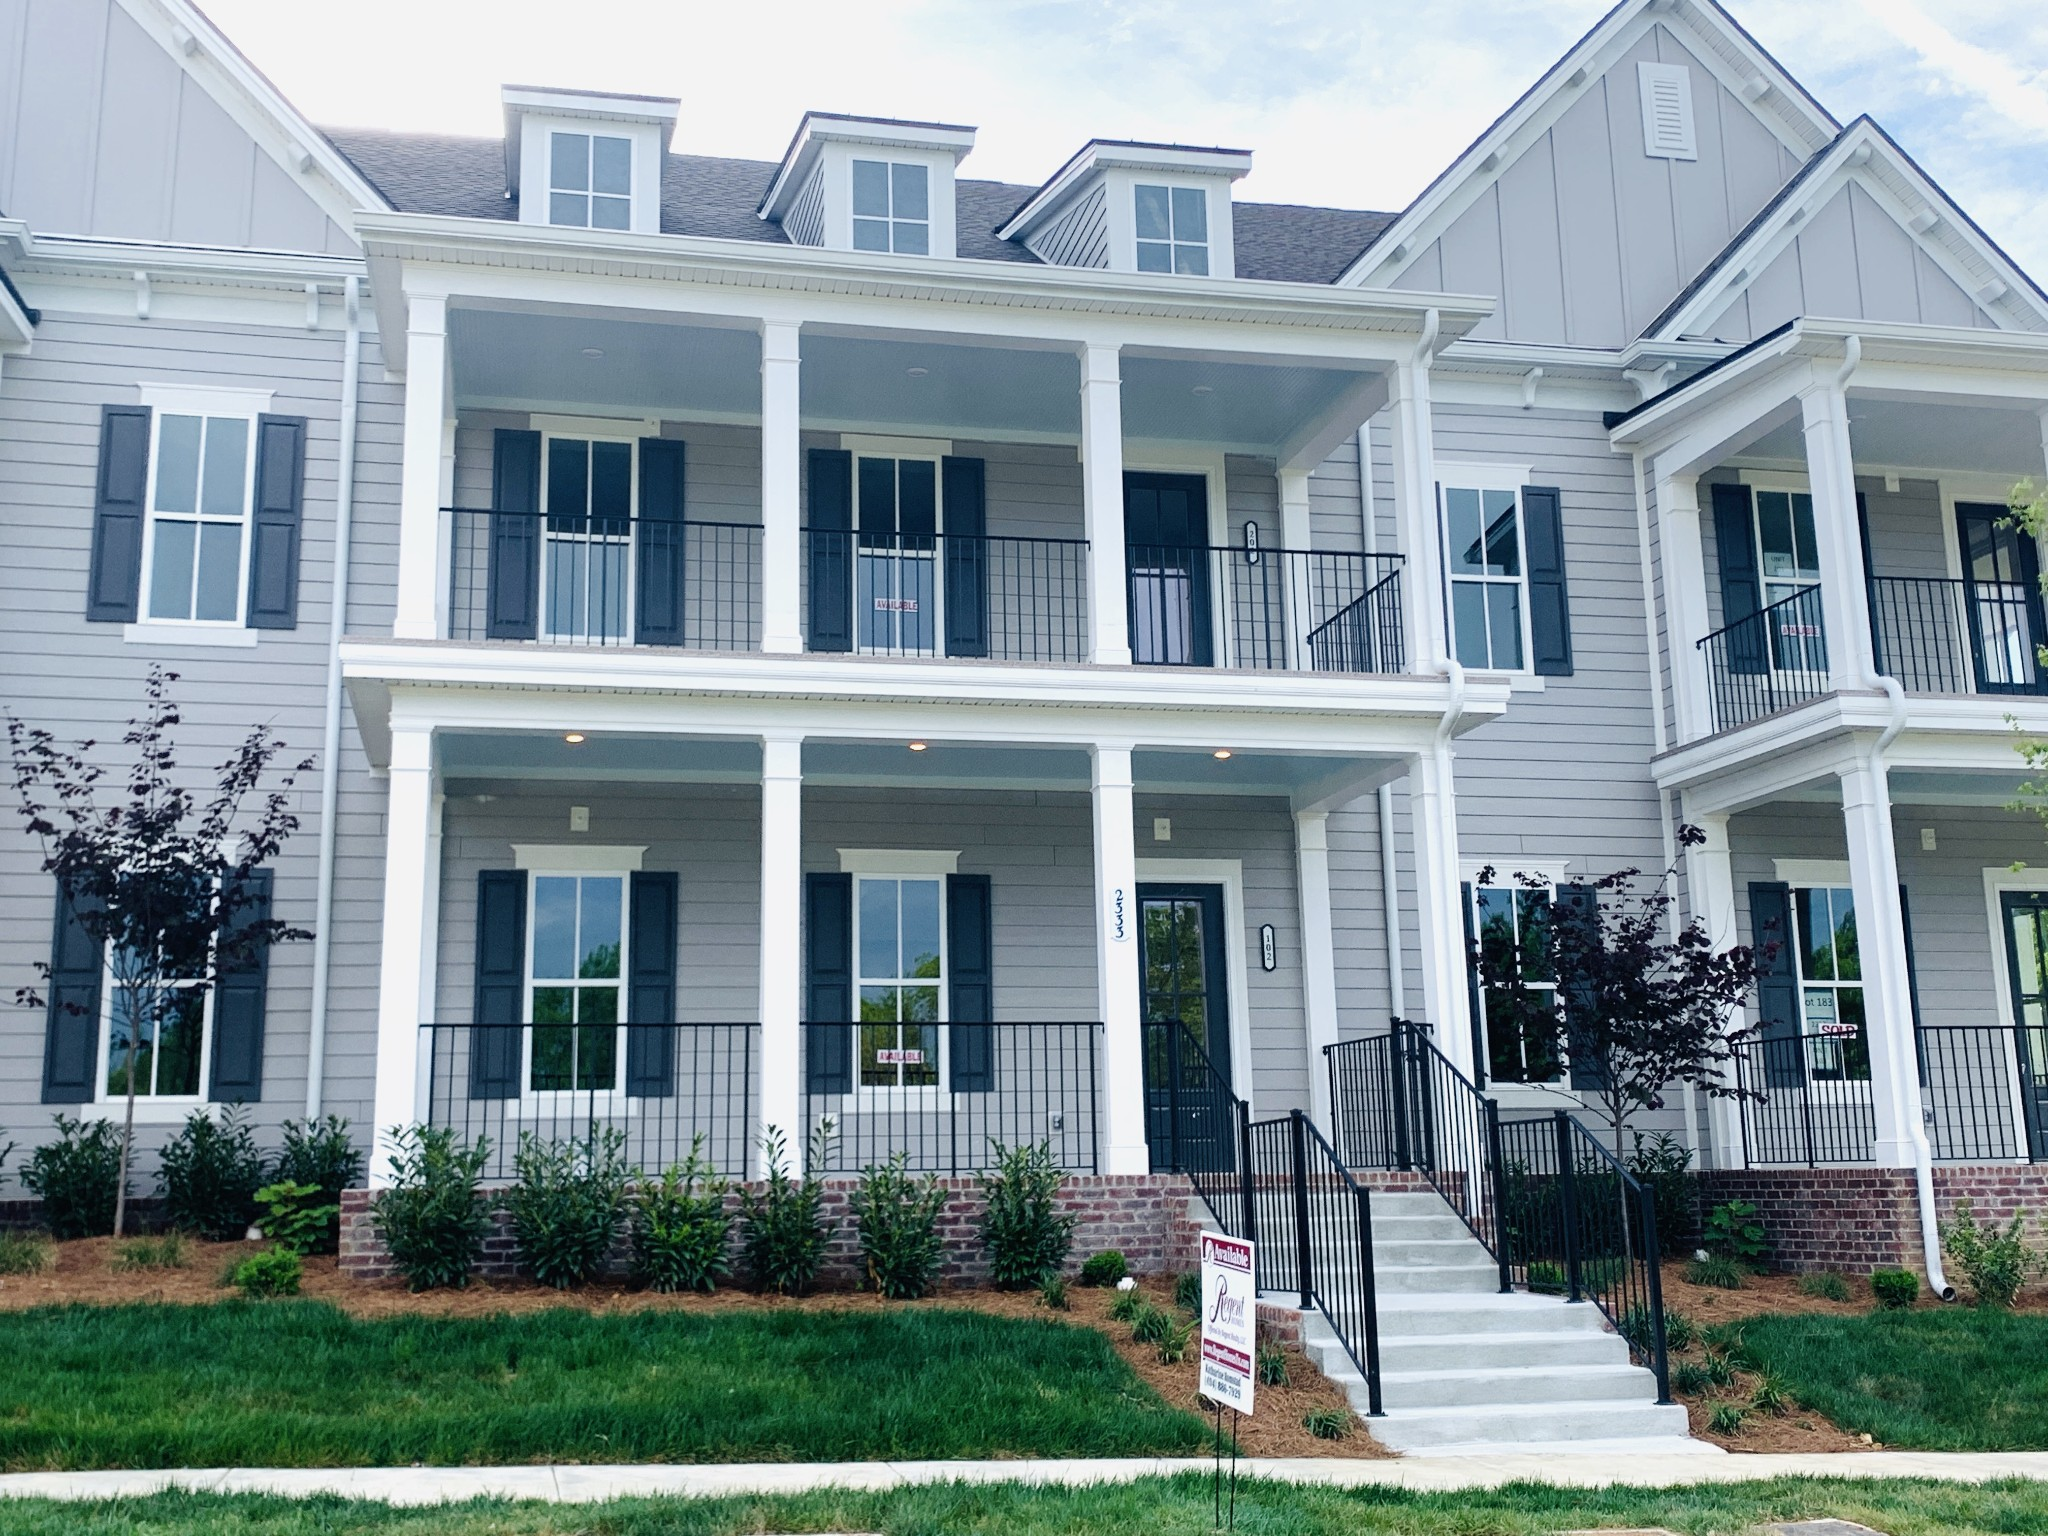 This CONDO building is currently under construction, going into sheetrock, two bedroom, 2 bath, roommate plan, open concept living, large  porch, gourmet kitchen with island, Selections can still be made. Parking available for residence. Call Katharine For all Showings 404-886-7929.